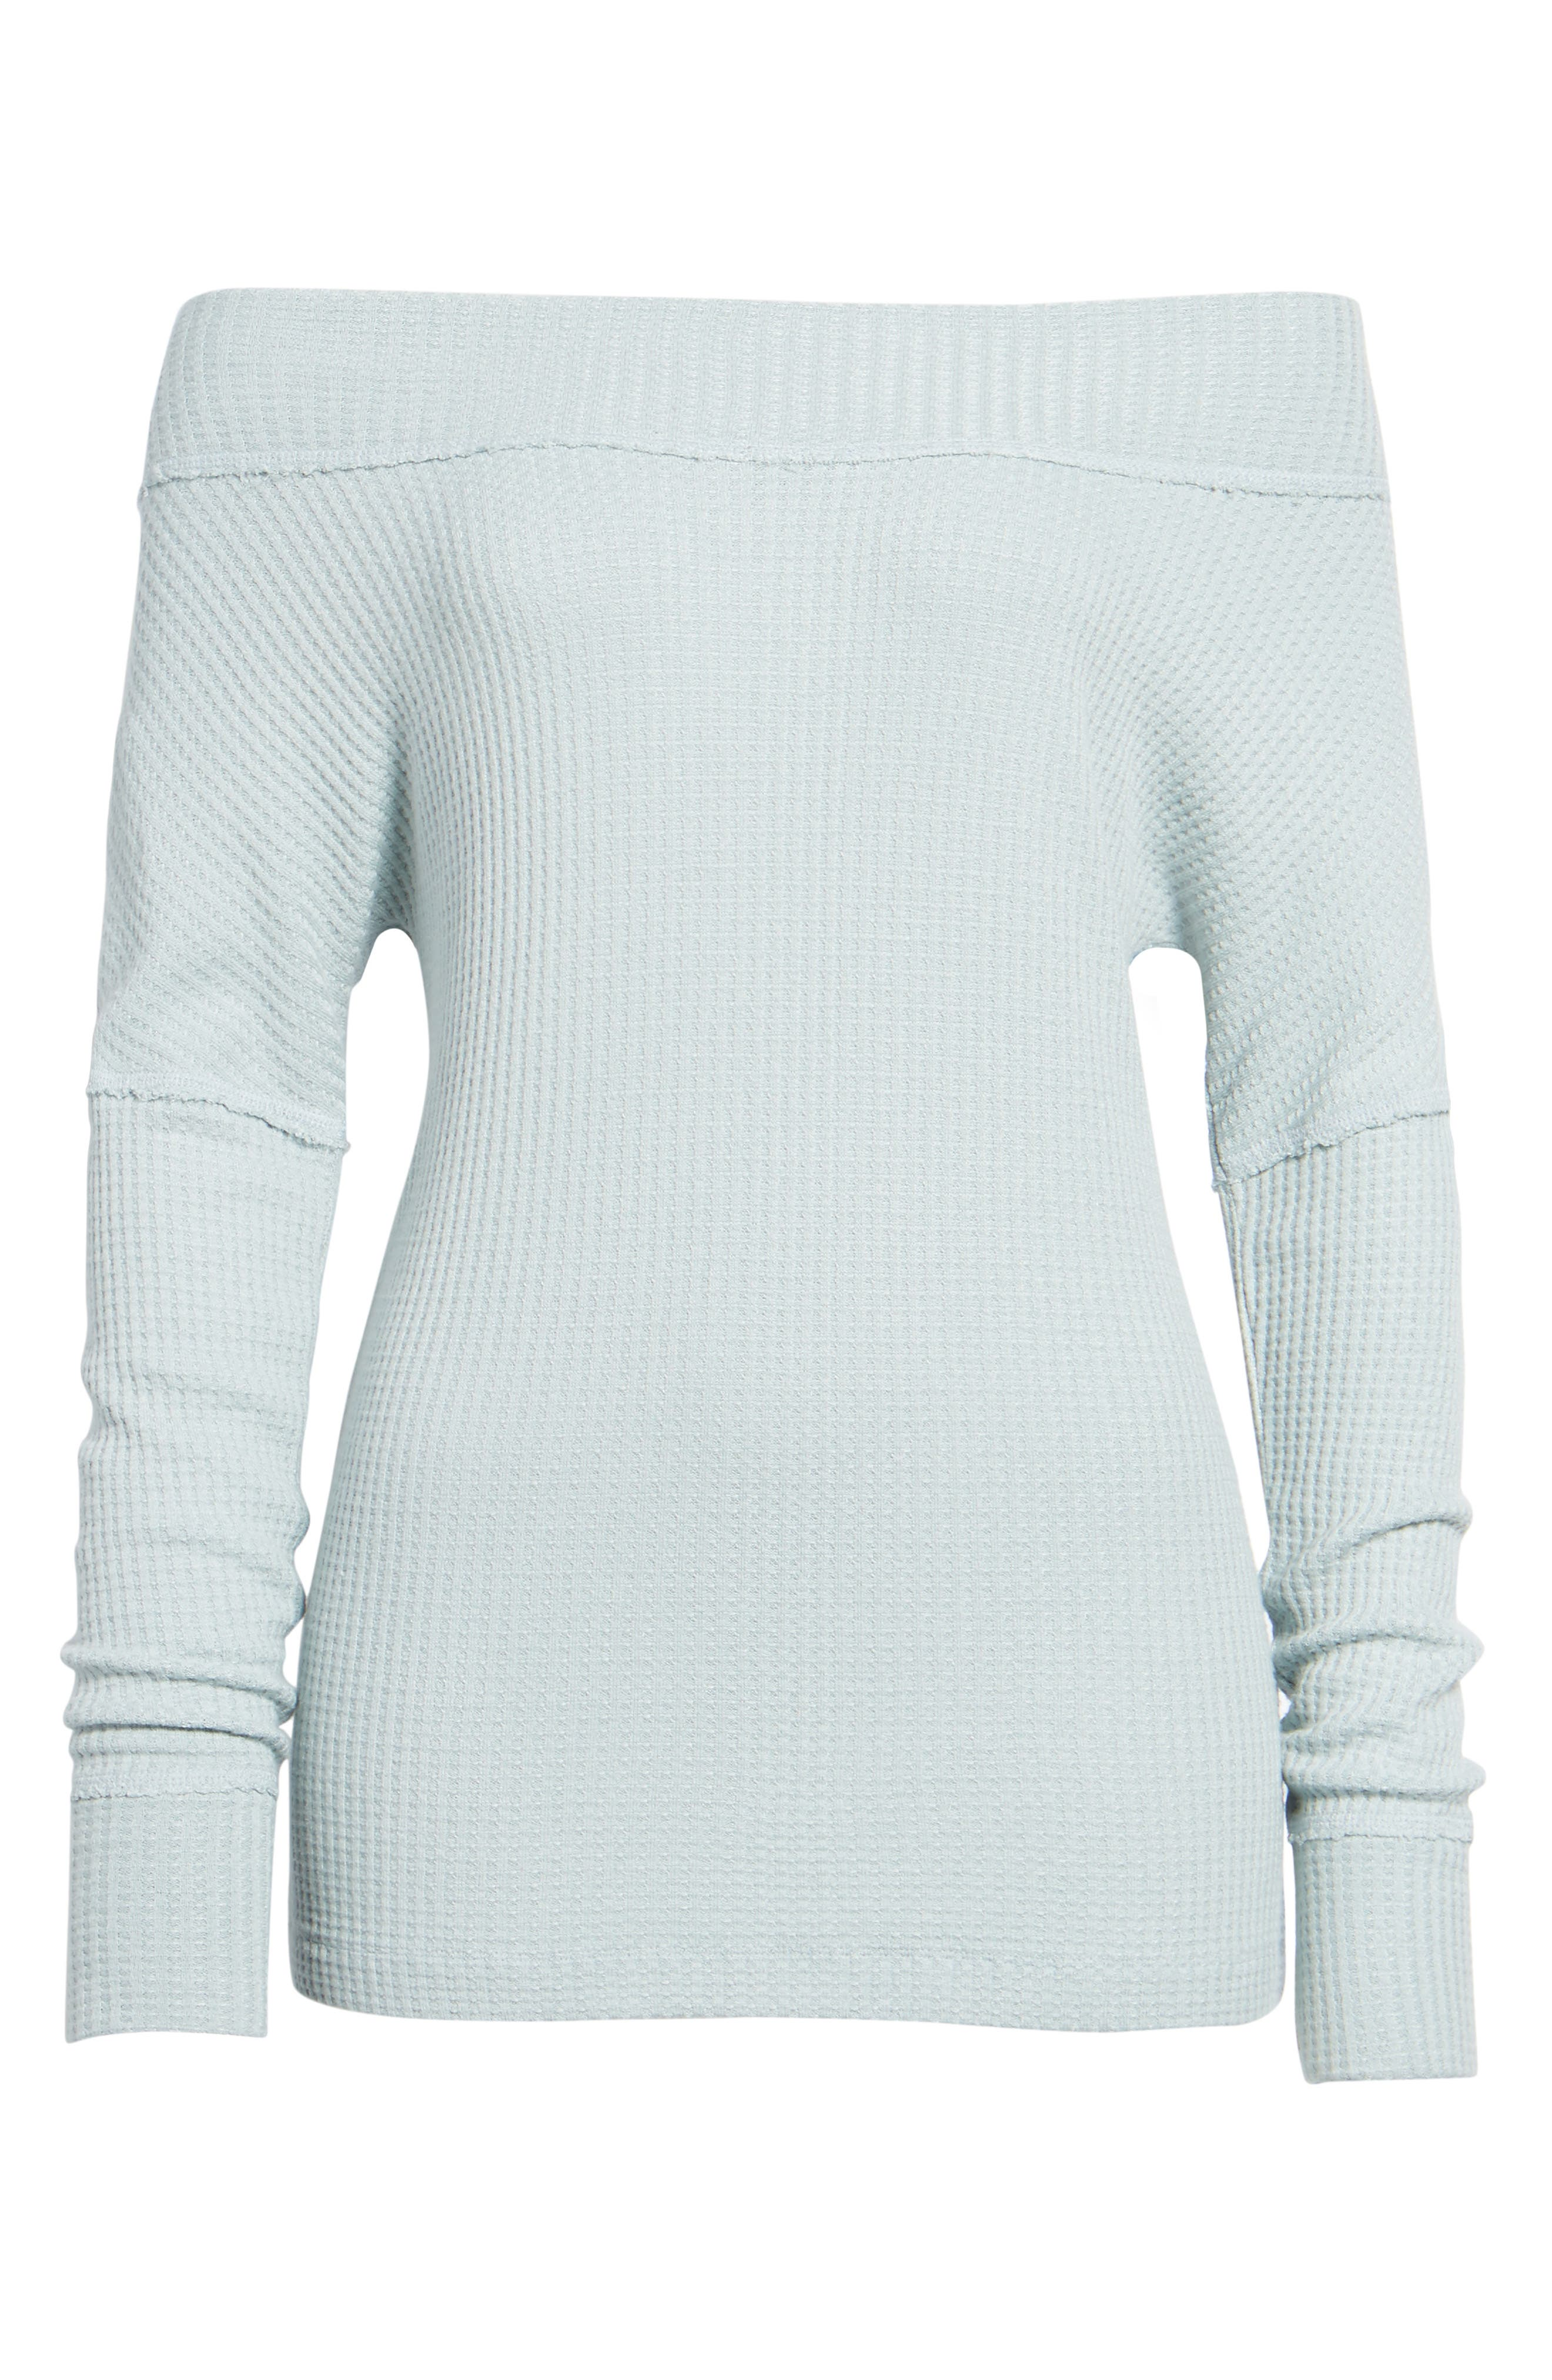 Off the Shoulder Thermal Knit Top,                             Alternate thumbnail 6, color,                             430